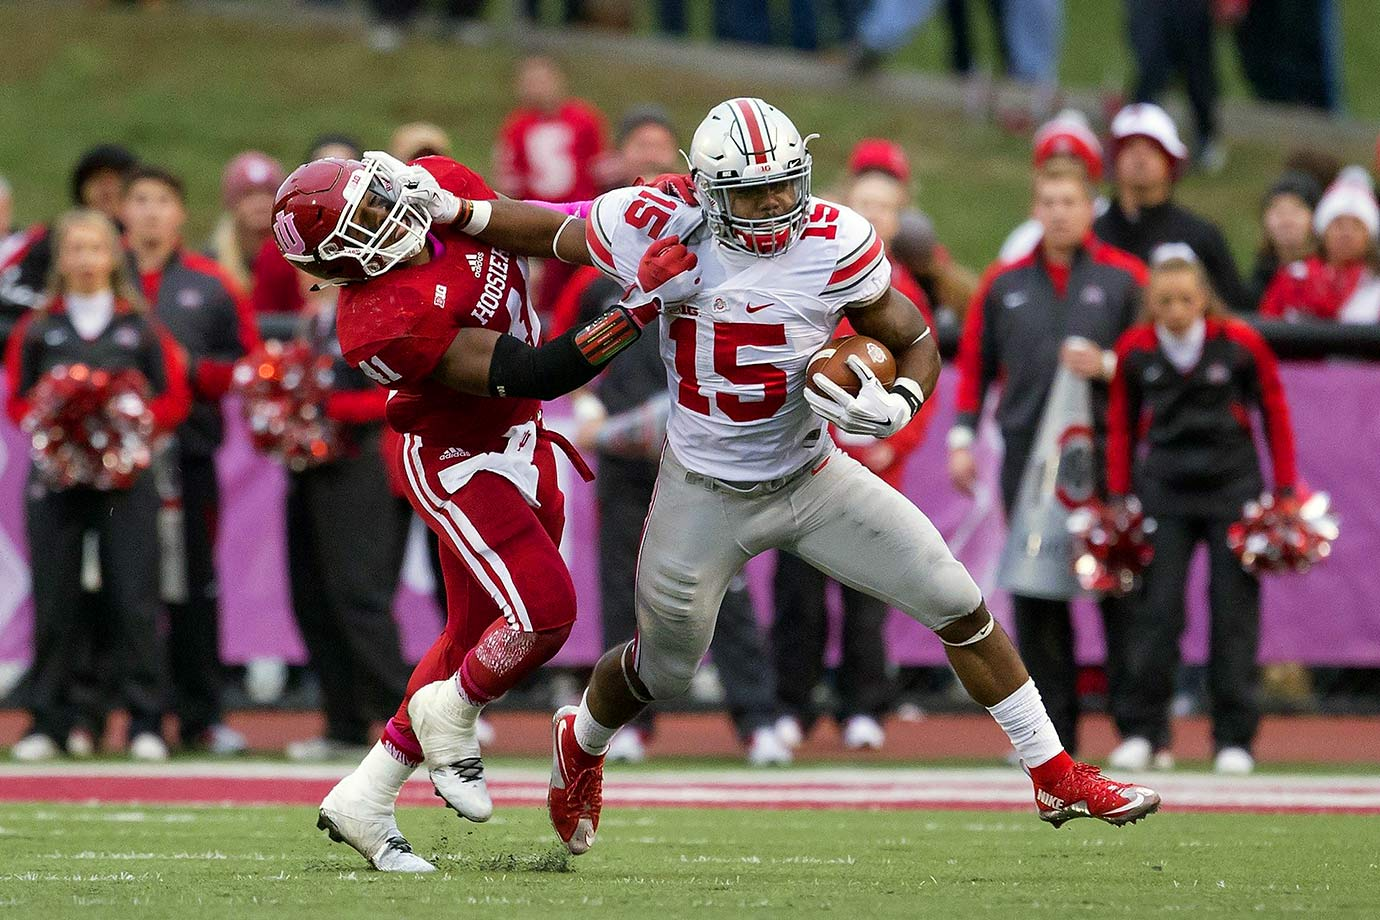 The defending national champion Buckeyes escaped Bloomington with a win thanks to a Heisman-like effort from Ezekiel Elliott, who ran 23 times for 274 yards with three touchdowns. Elliott seemingly put the game away with his third touchdown to give Ohio State a 34–20 lead in the fourth quarter, but Indiana backup quarterback Zander Diamont responded with a 79-yard touchdown run on the first play of the ensuing drive. The Hoosiers got the ball back with the chance to tie it, and Diamont drove to the Ohio State six-yard line. But his pass to the back corner of the end zone was batted away by Ohio State's Eli Apple as time expired.